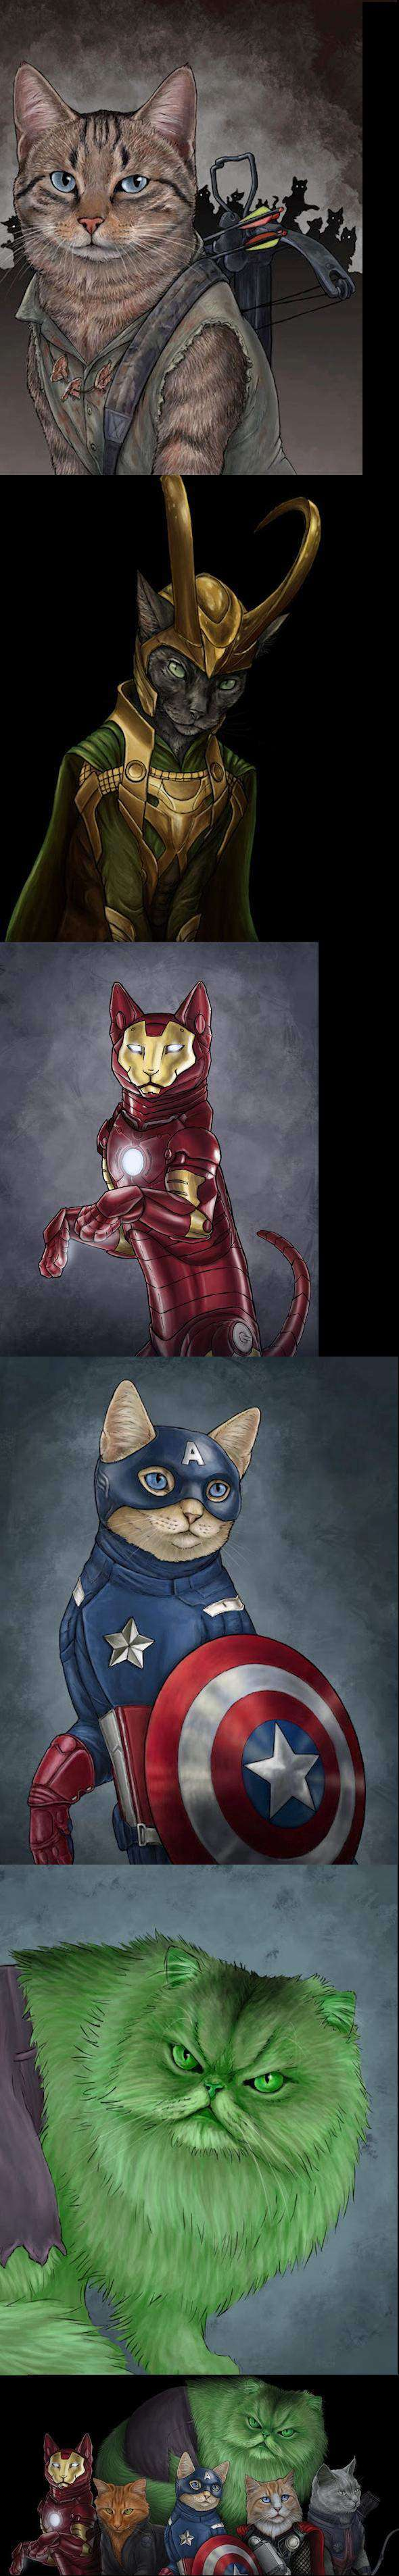 The Catvengers - The first one looks more like Darryl Dixon from Walking Dead.